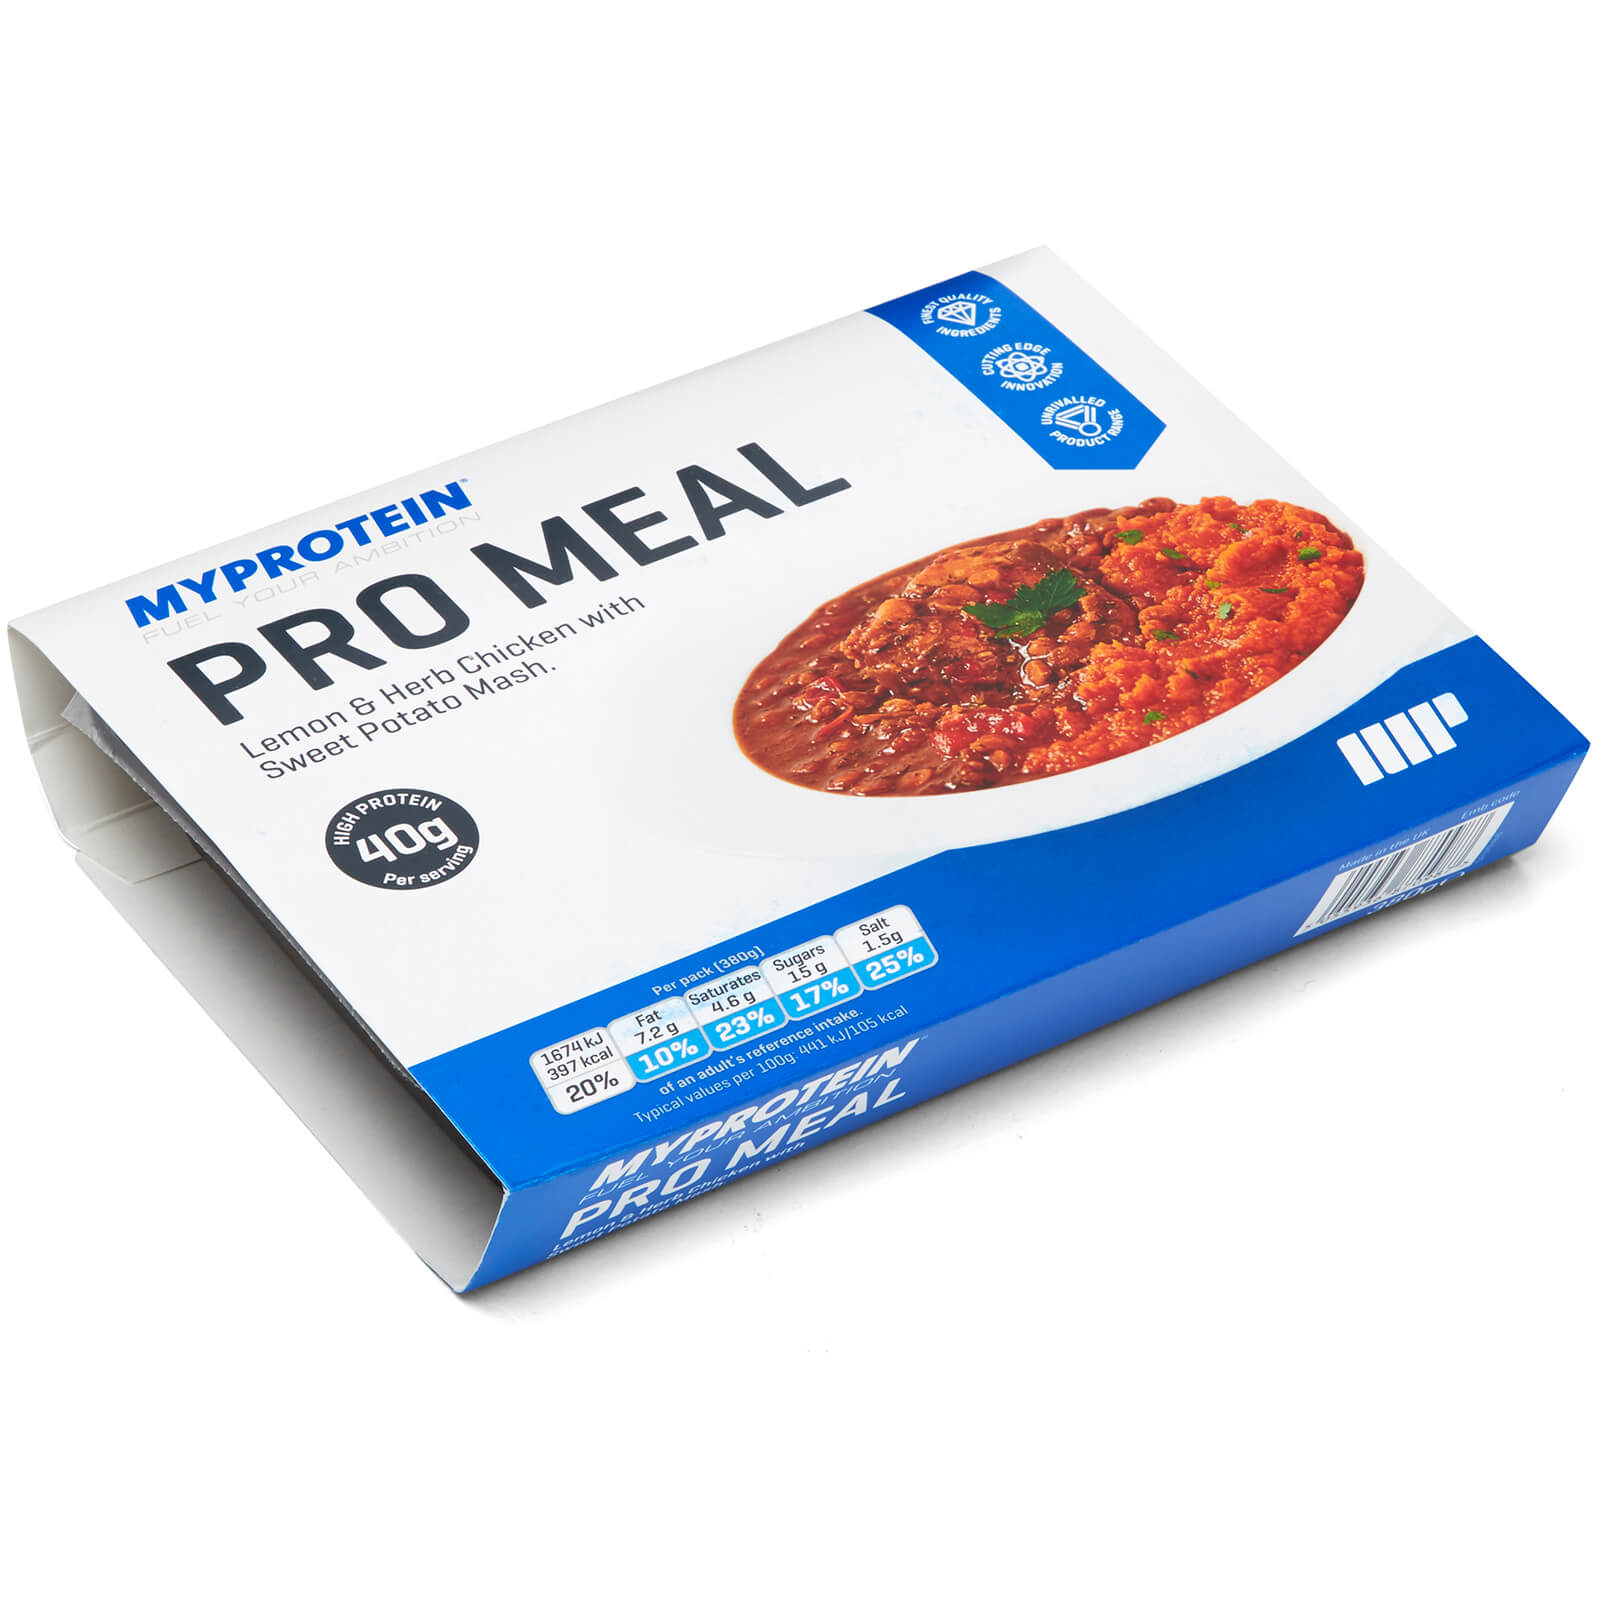 Pro Meals - Lemon Chicken & Sweet Potato Mash - 6 x 380g